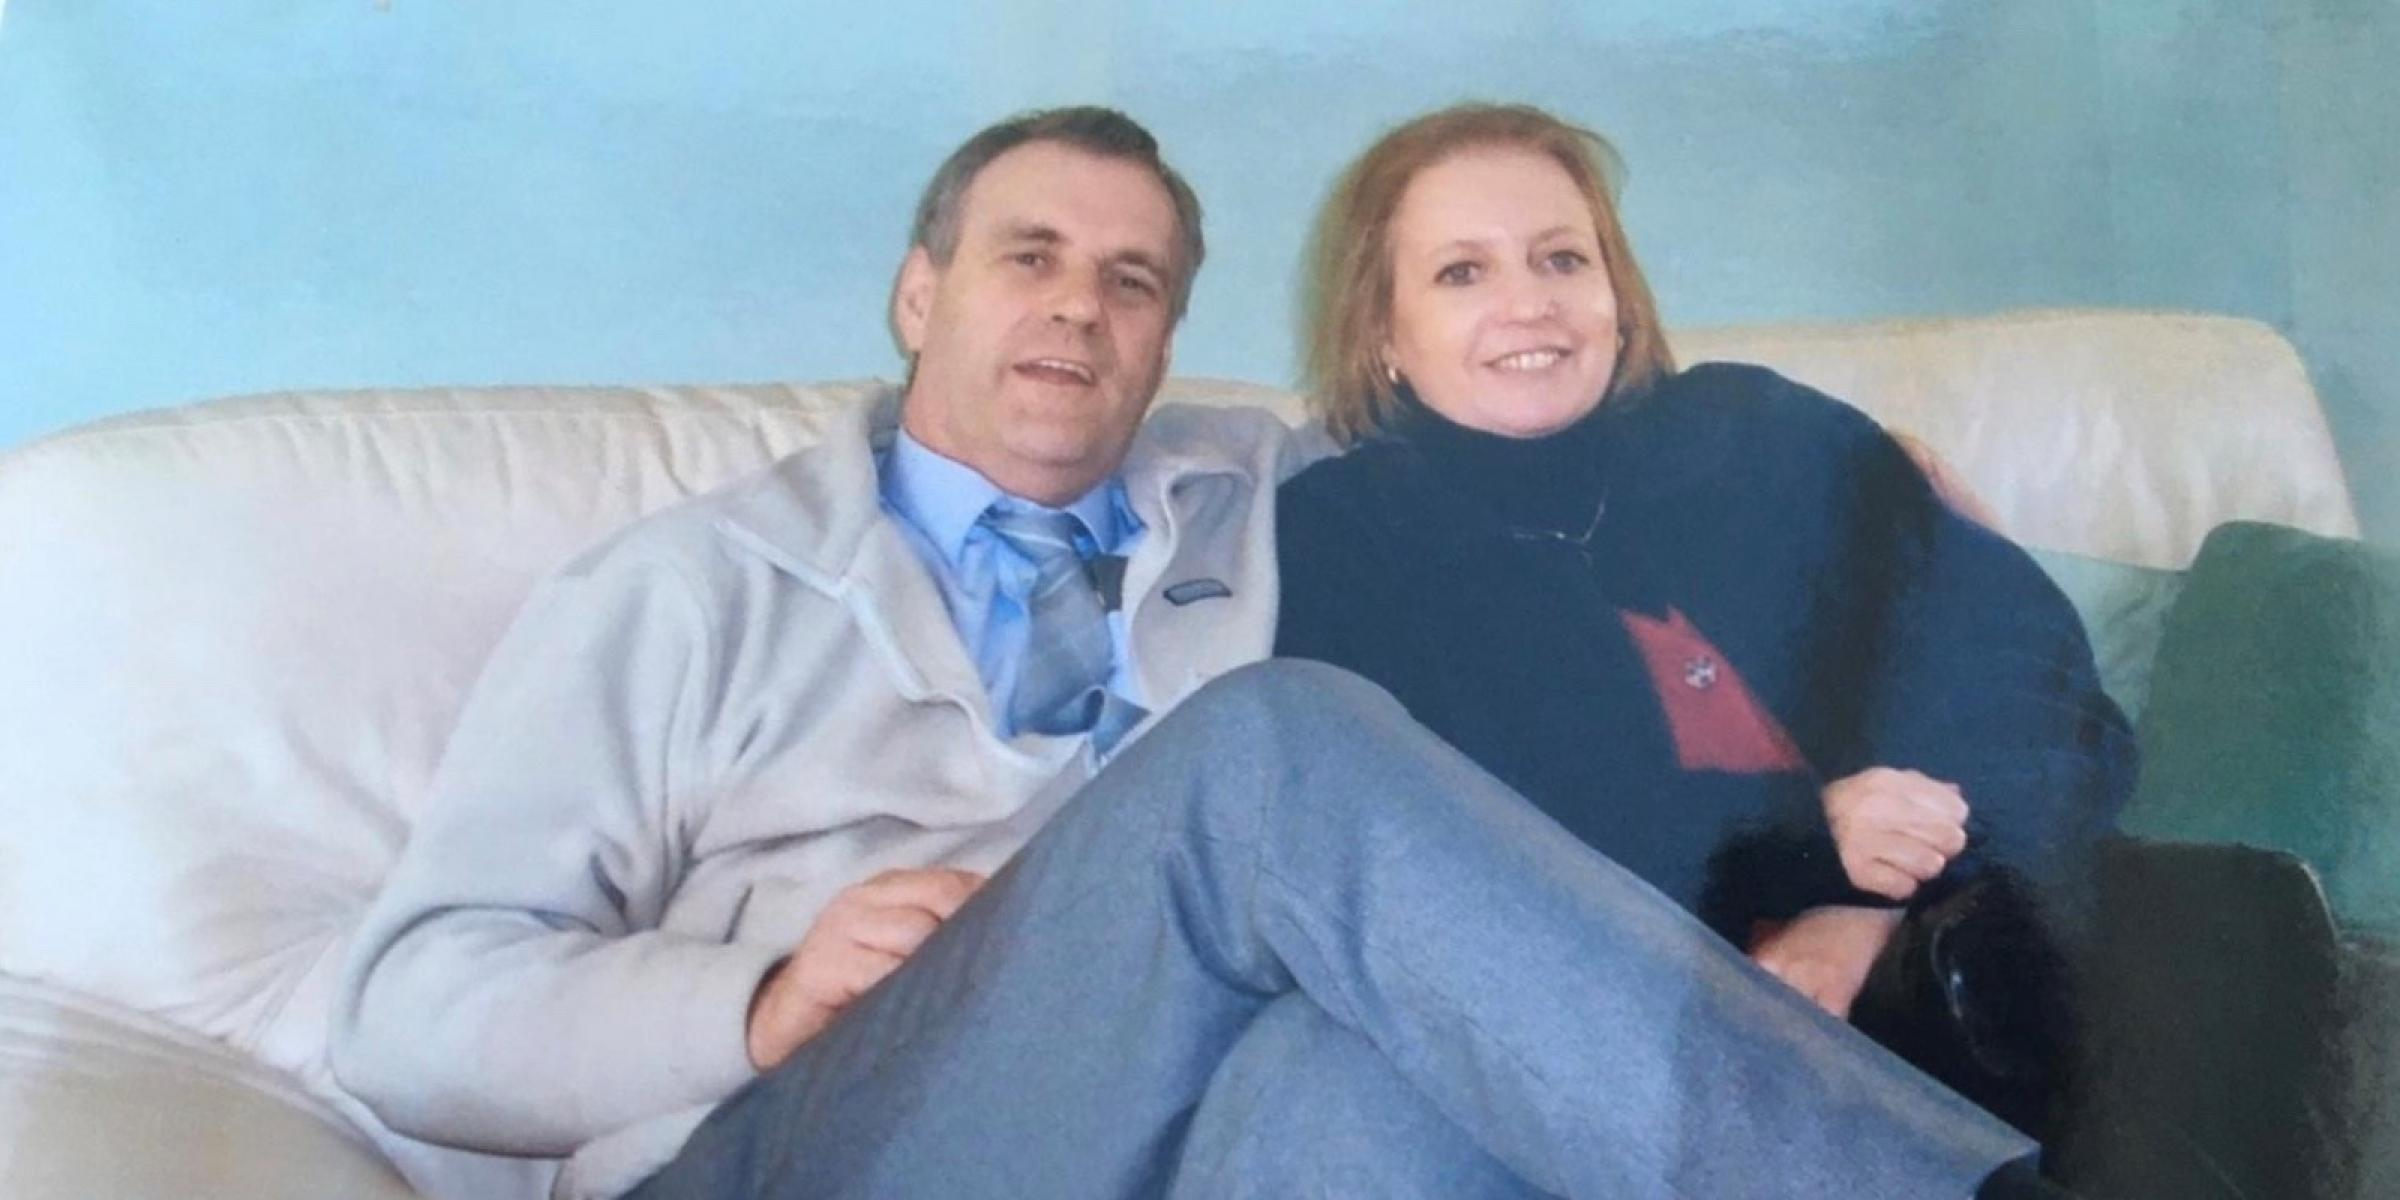 Peter and Joyce sitting on the sofa a number of years ago